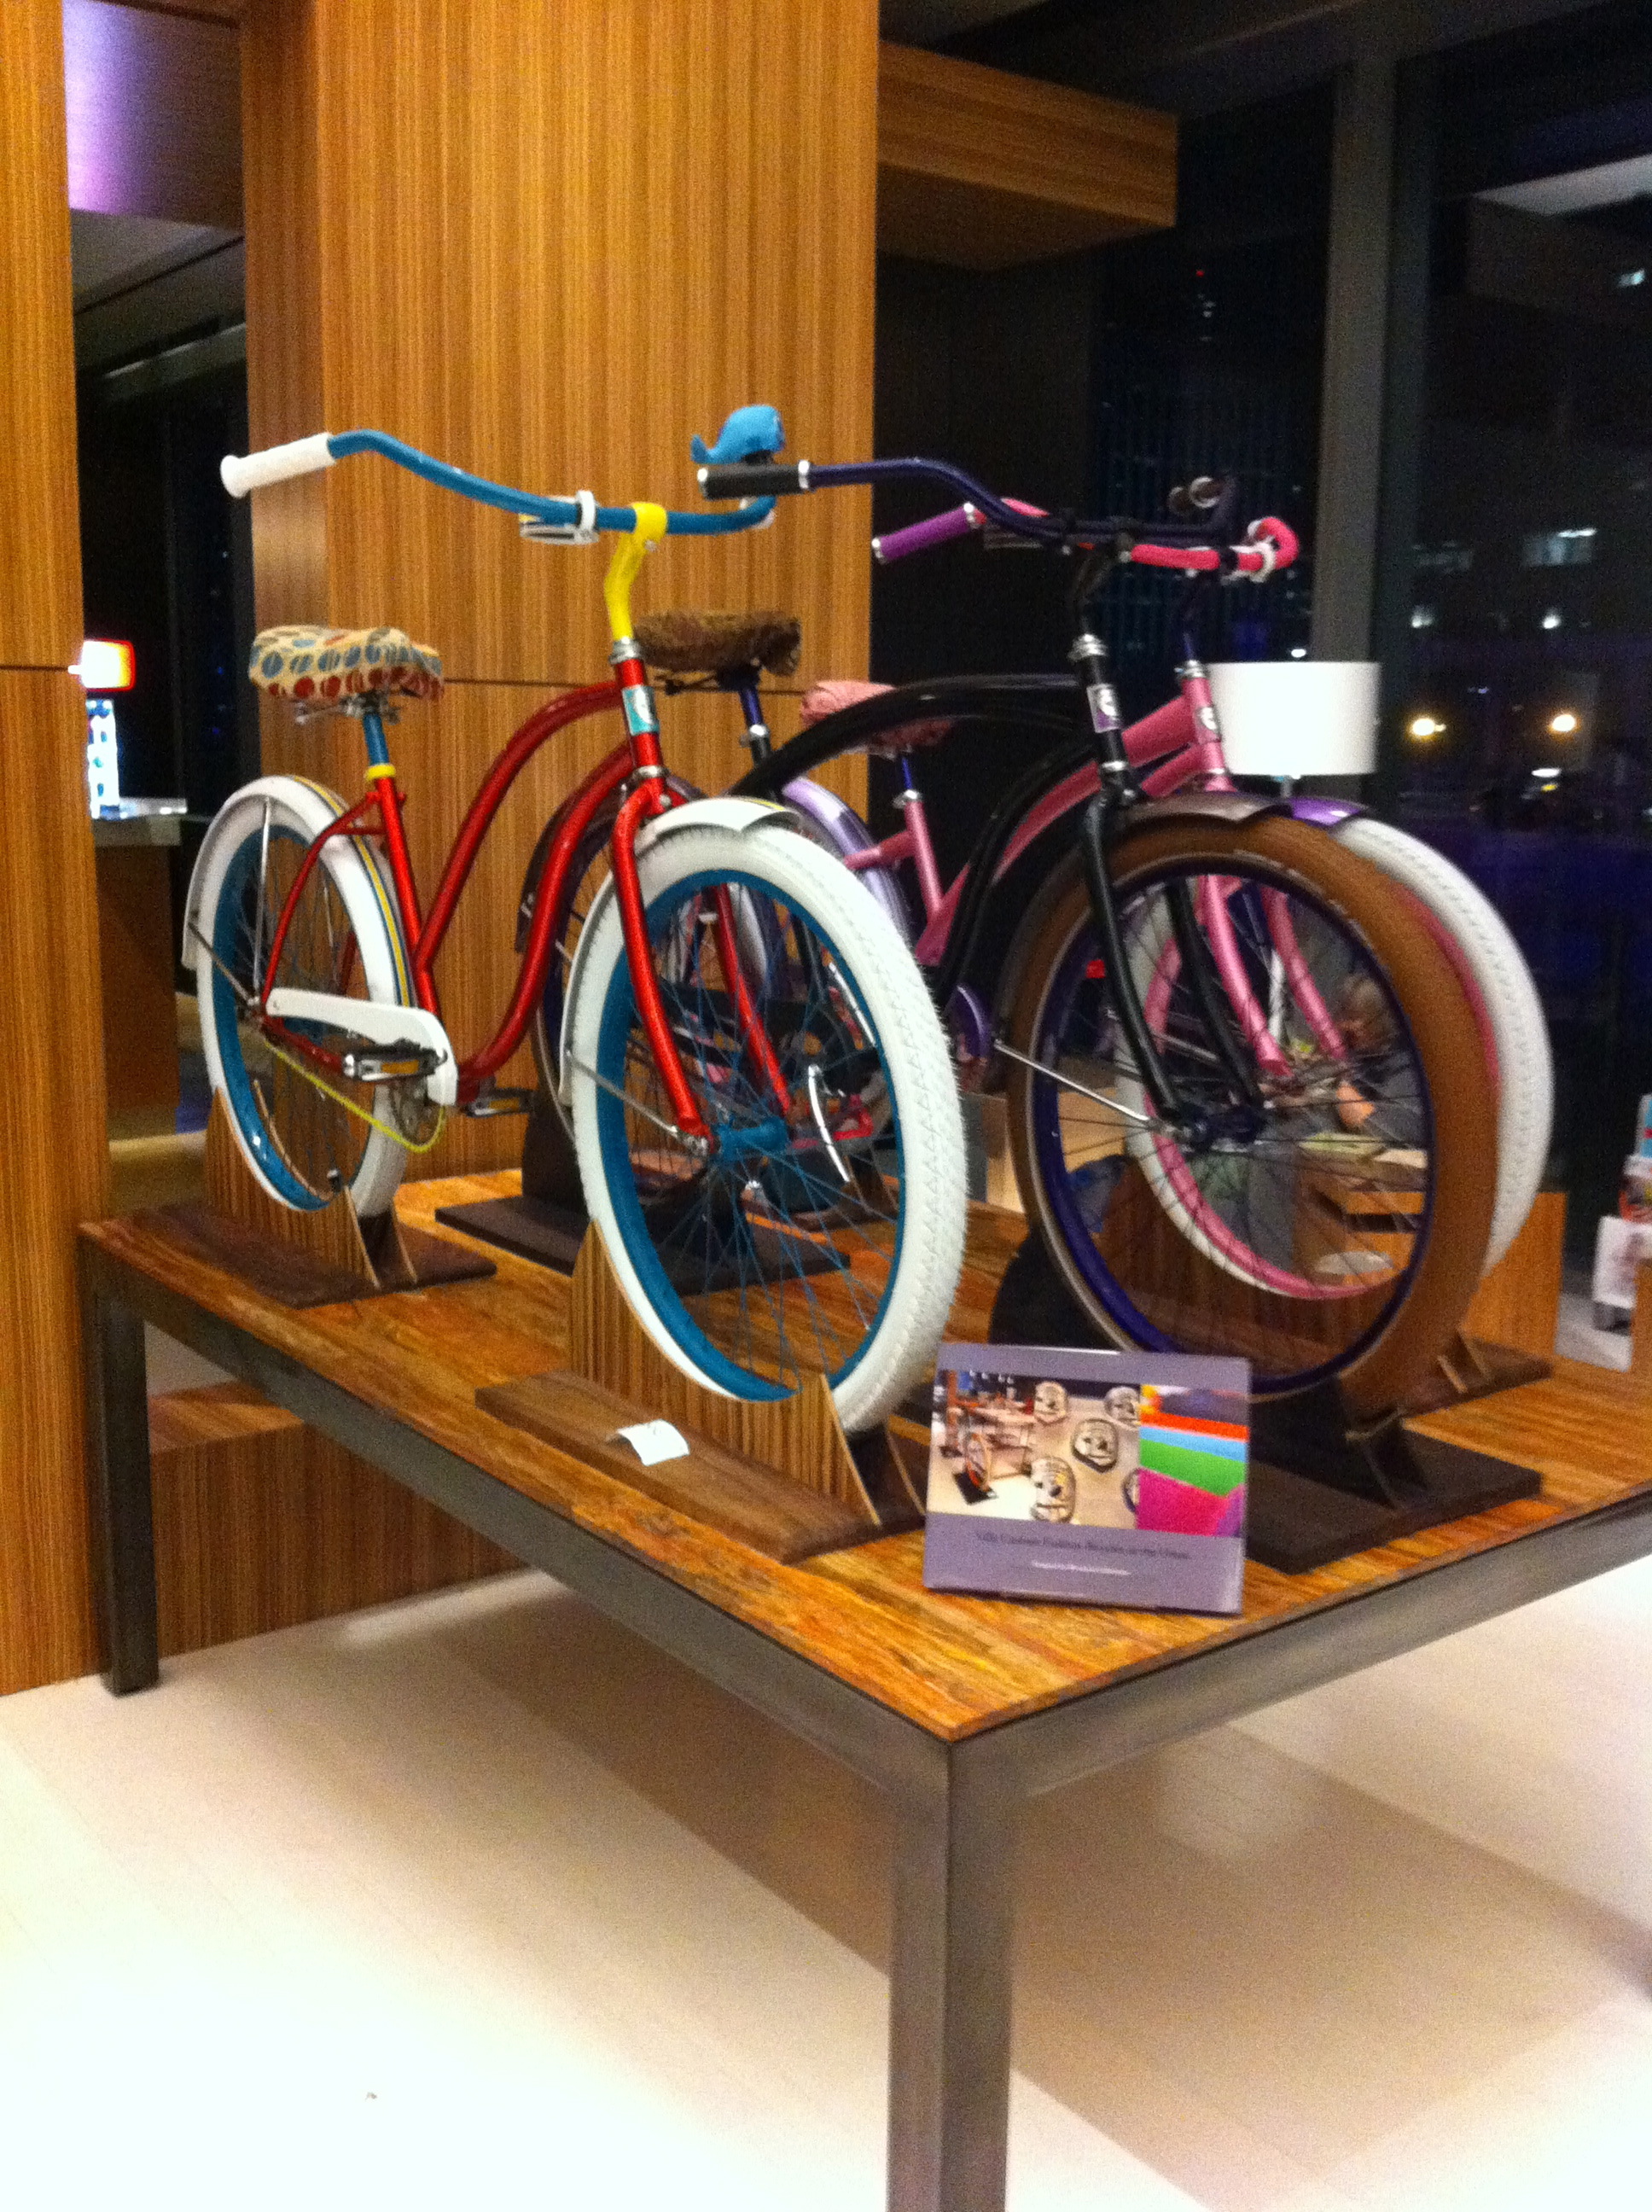 File:Villy Customs fashion bicycles at the Onmi Dallas gift shop ...